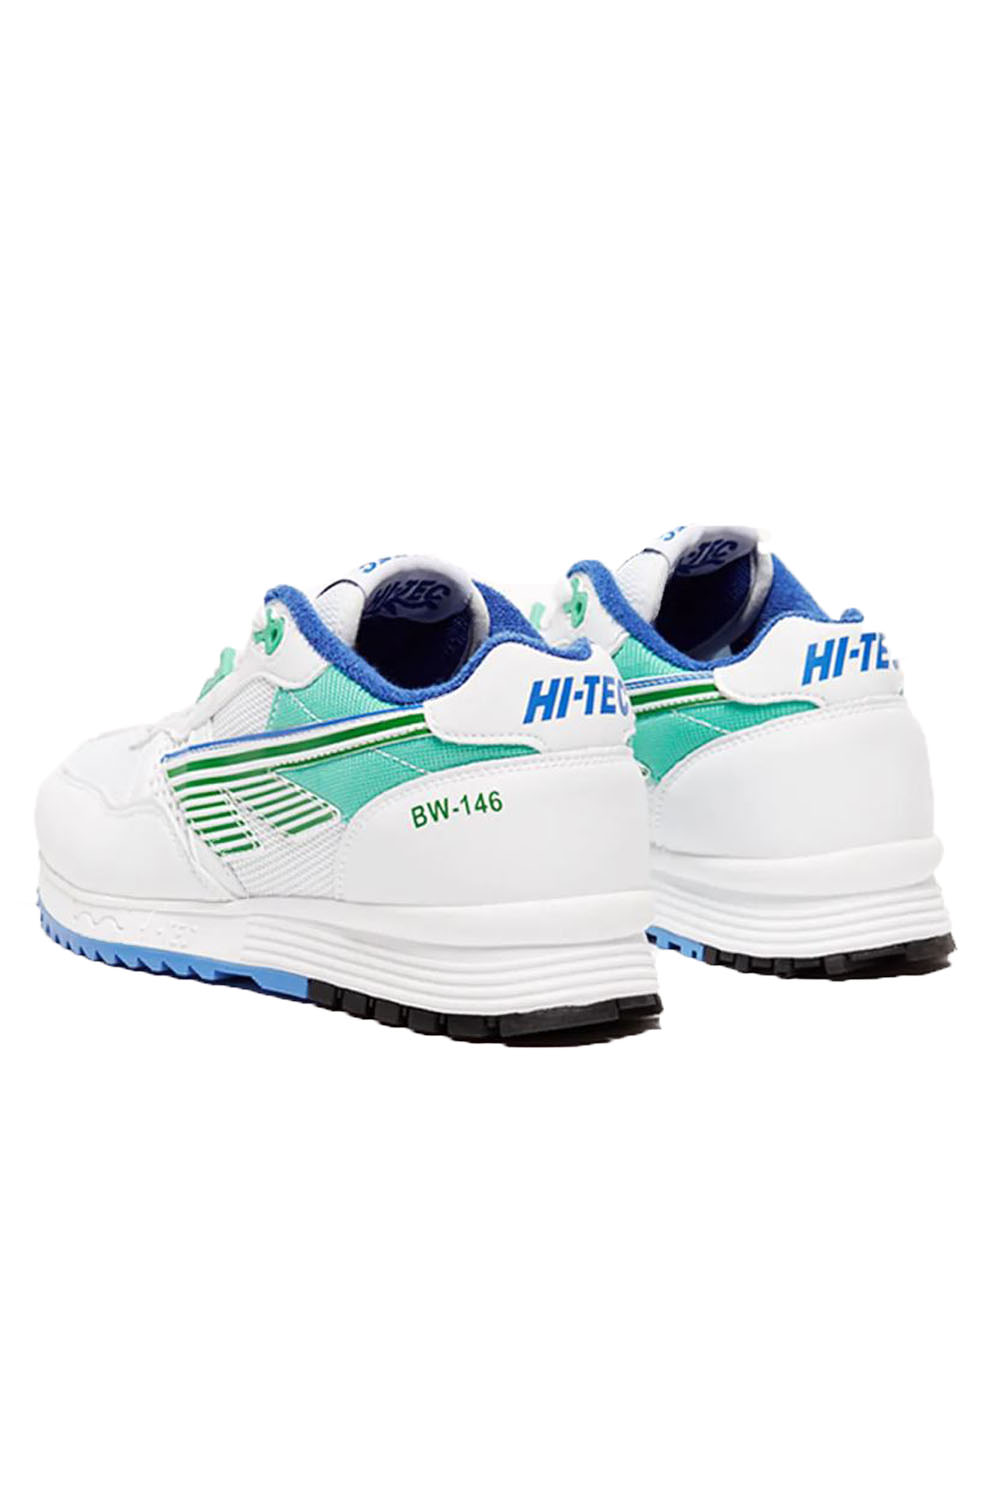 Hi-Tec-Unisex-Badwater-146-Retro-Trainers-Lace-Up-Running-Sport-Low-Top-Sneakers thumbnail 5